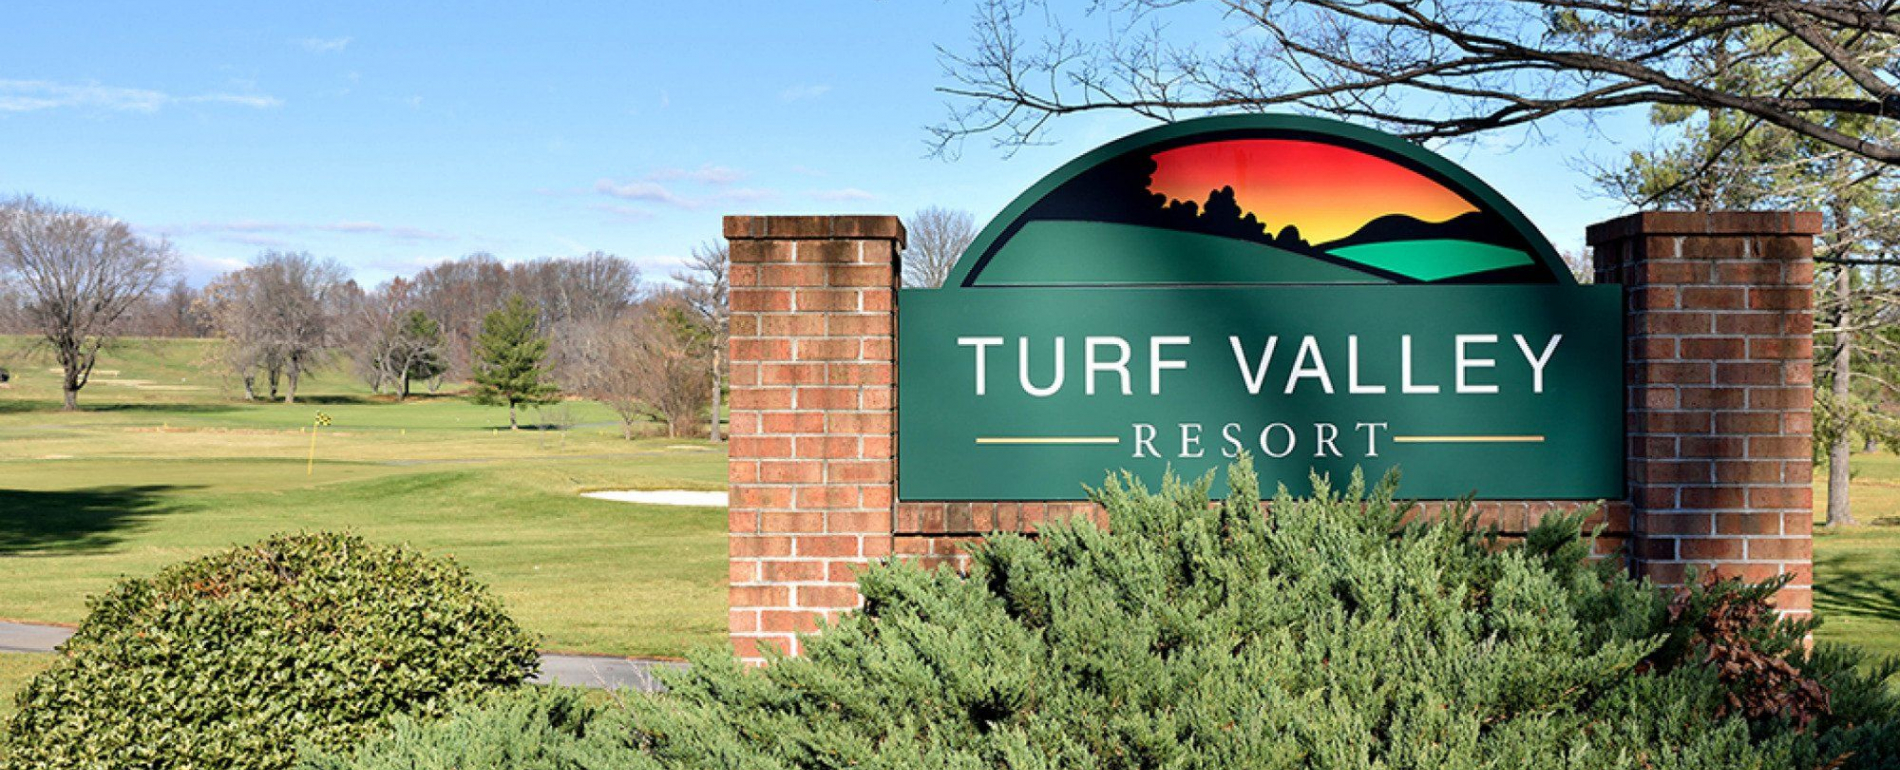 Turf Valley Sign